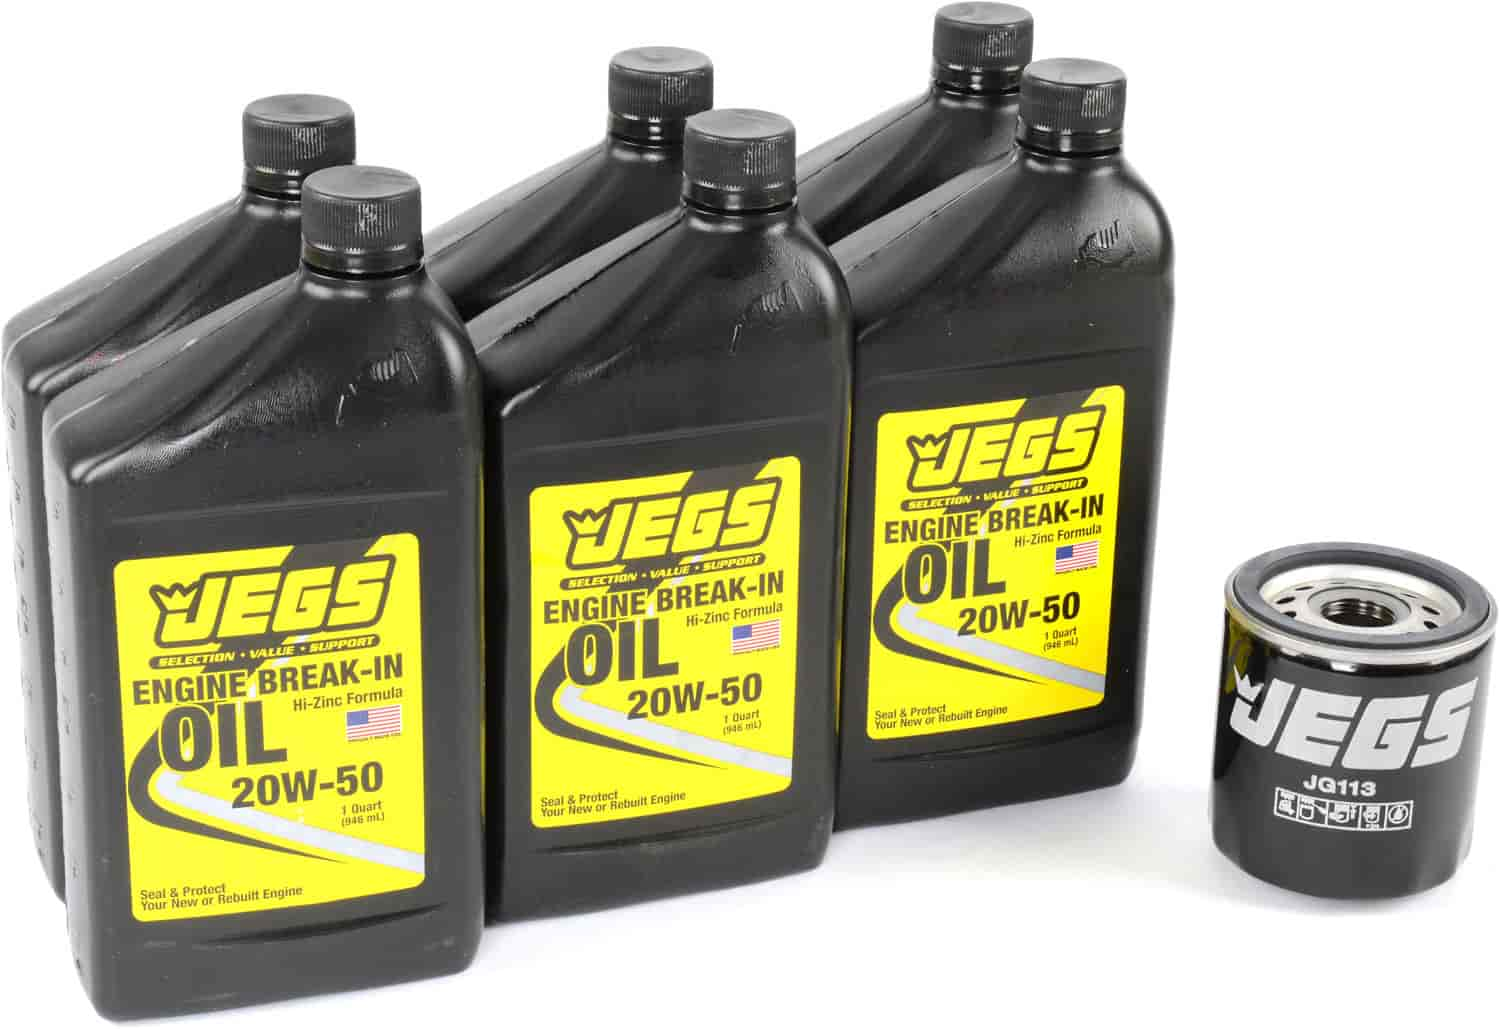 JEGS Performance Products JG113K1